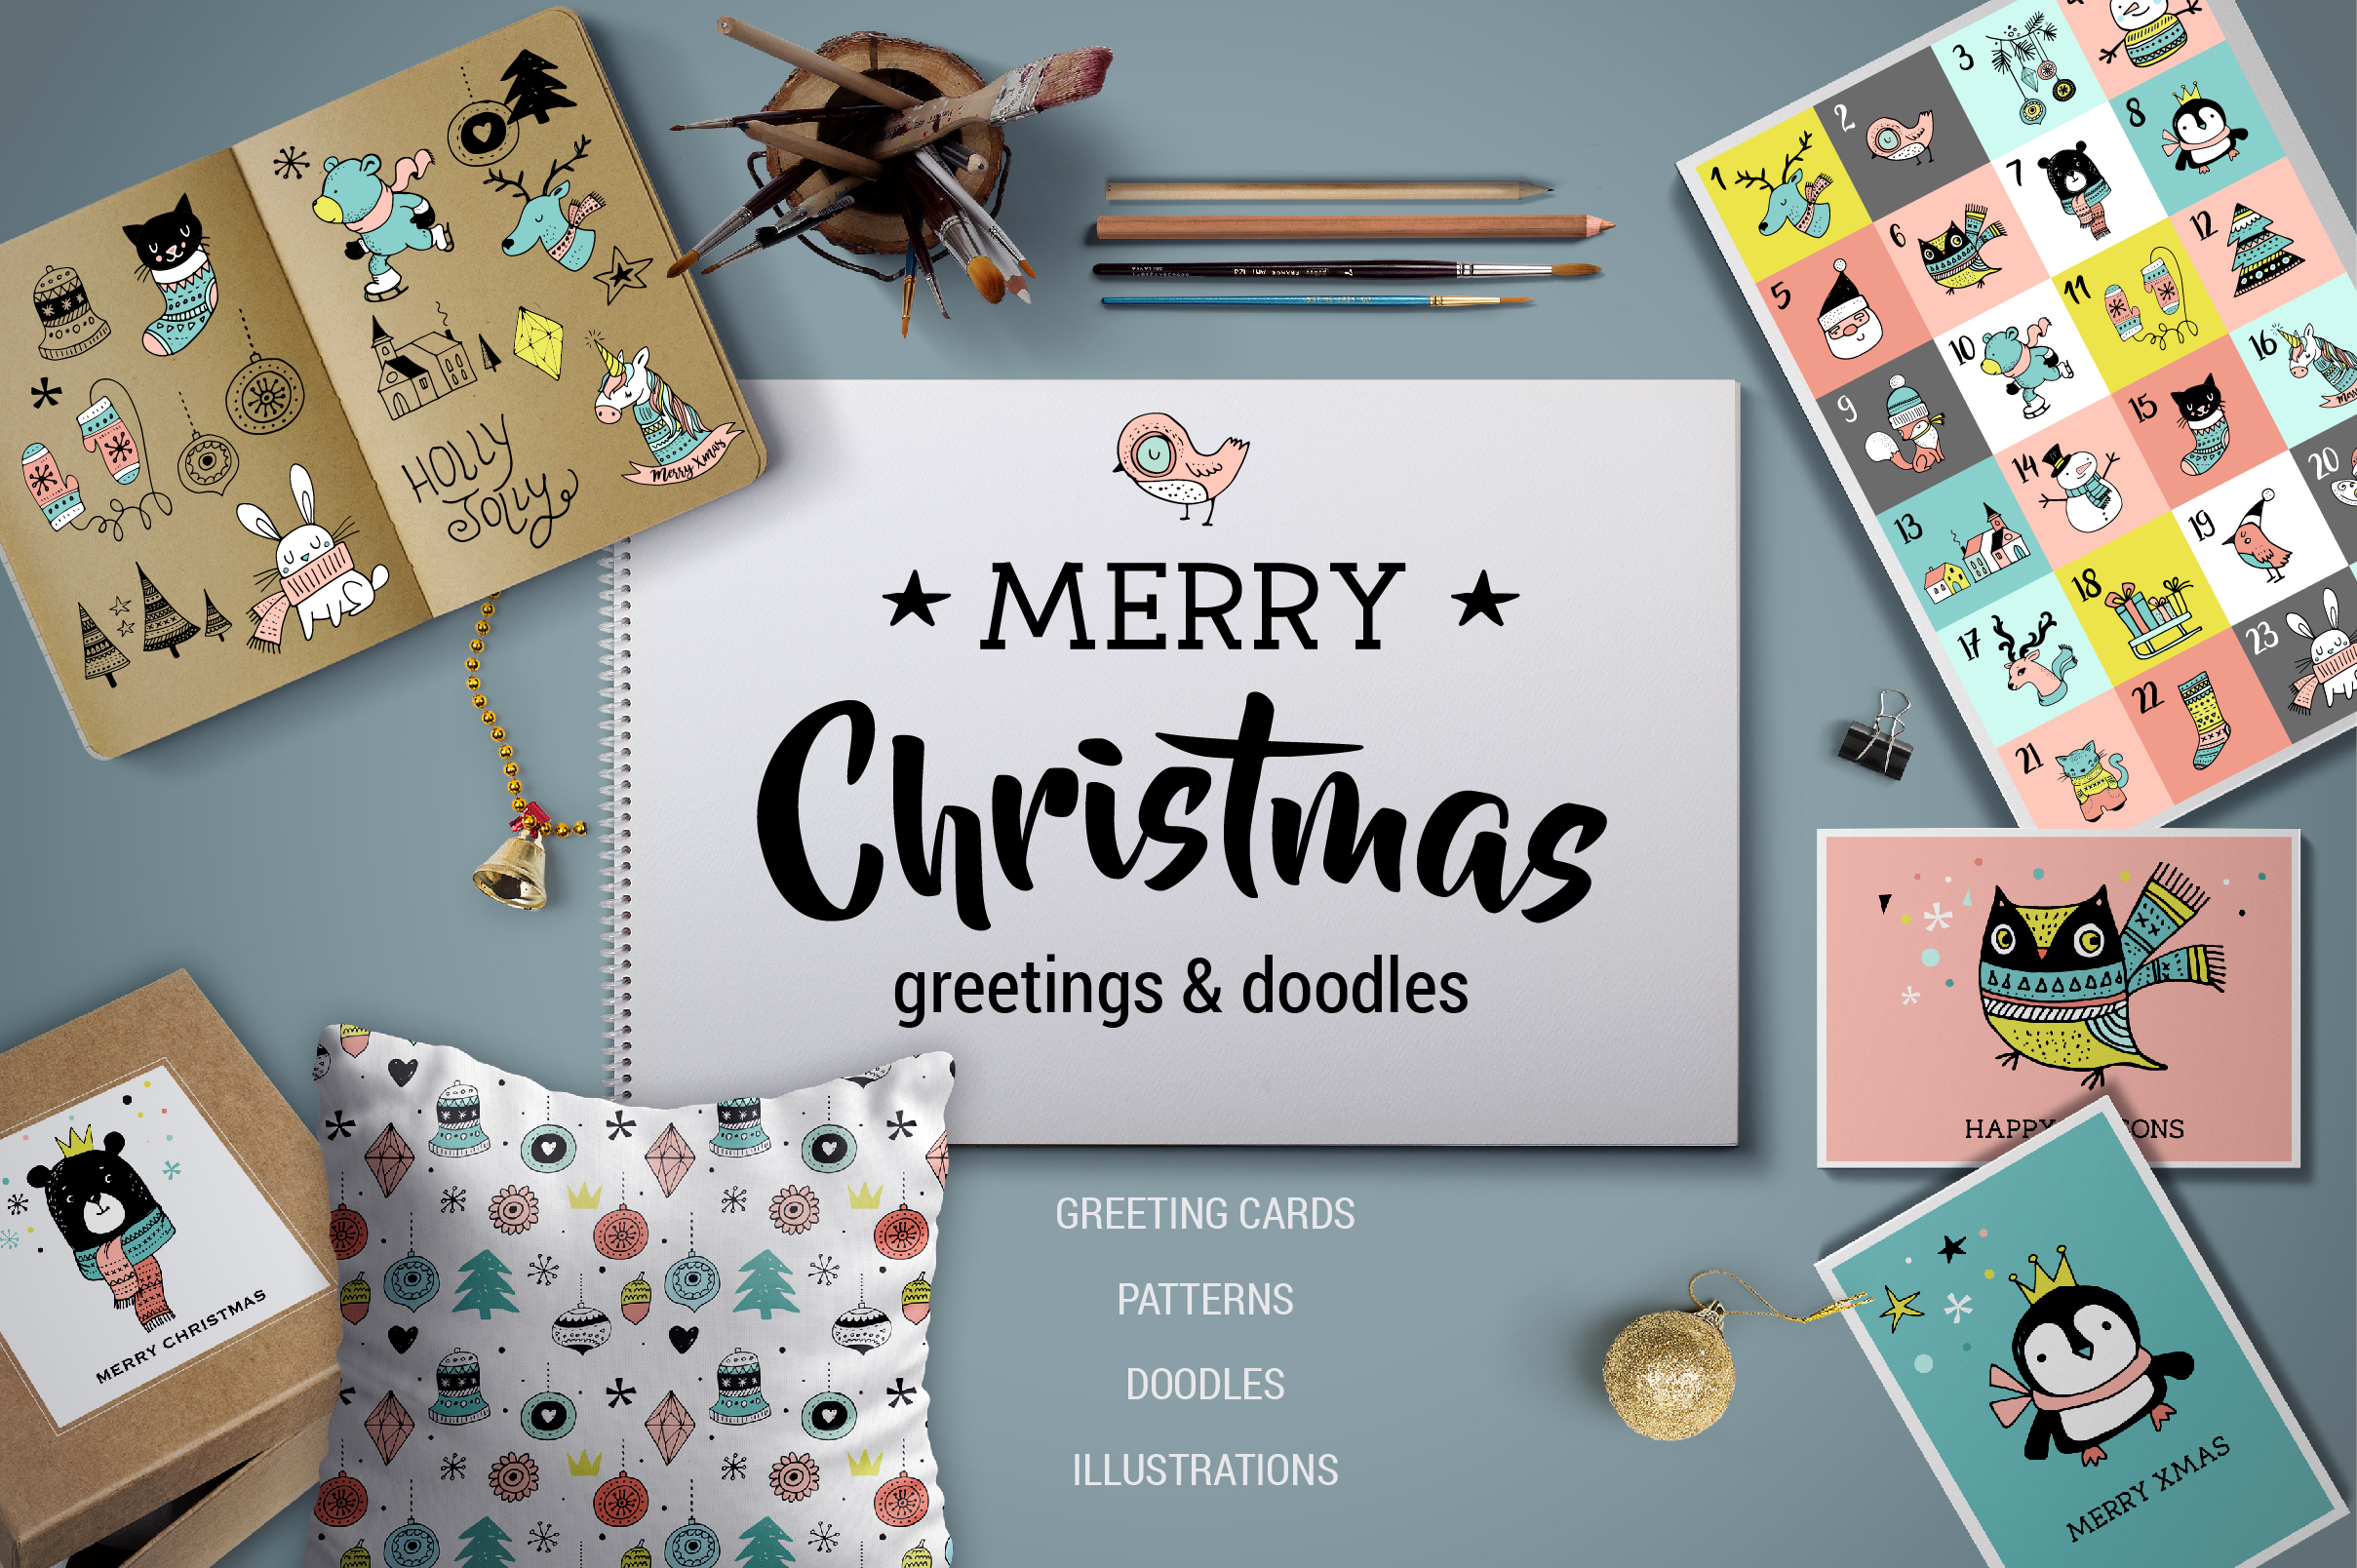 Merry Christmas greetings & doodles  example image 1